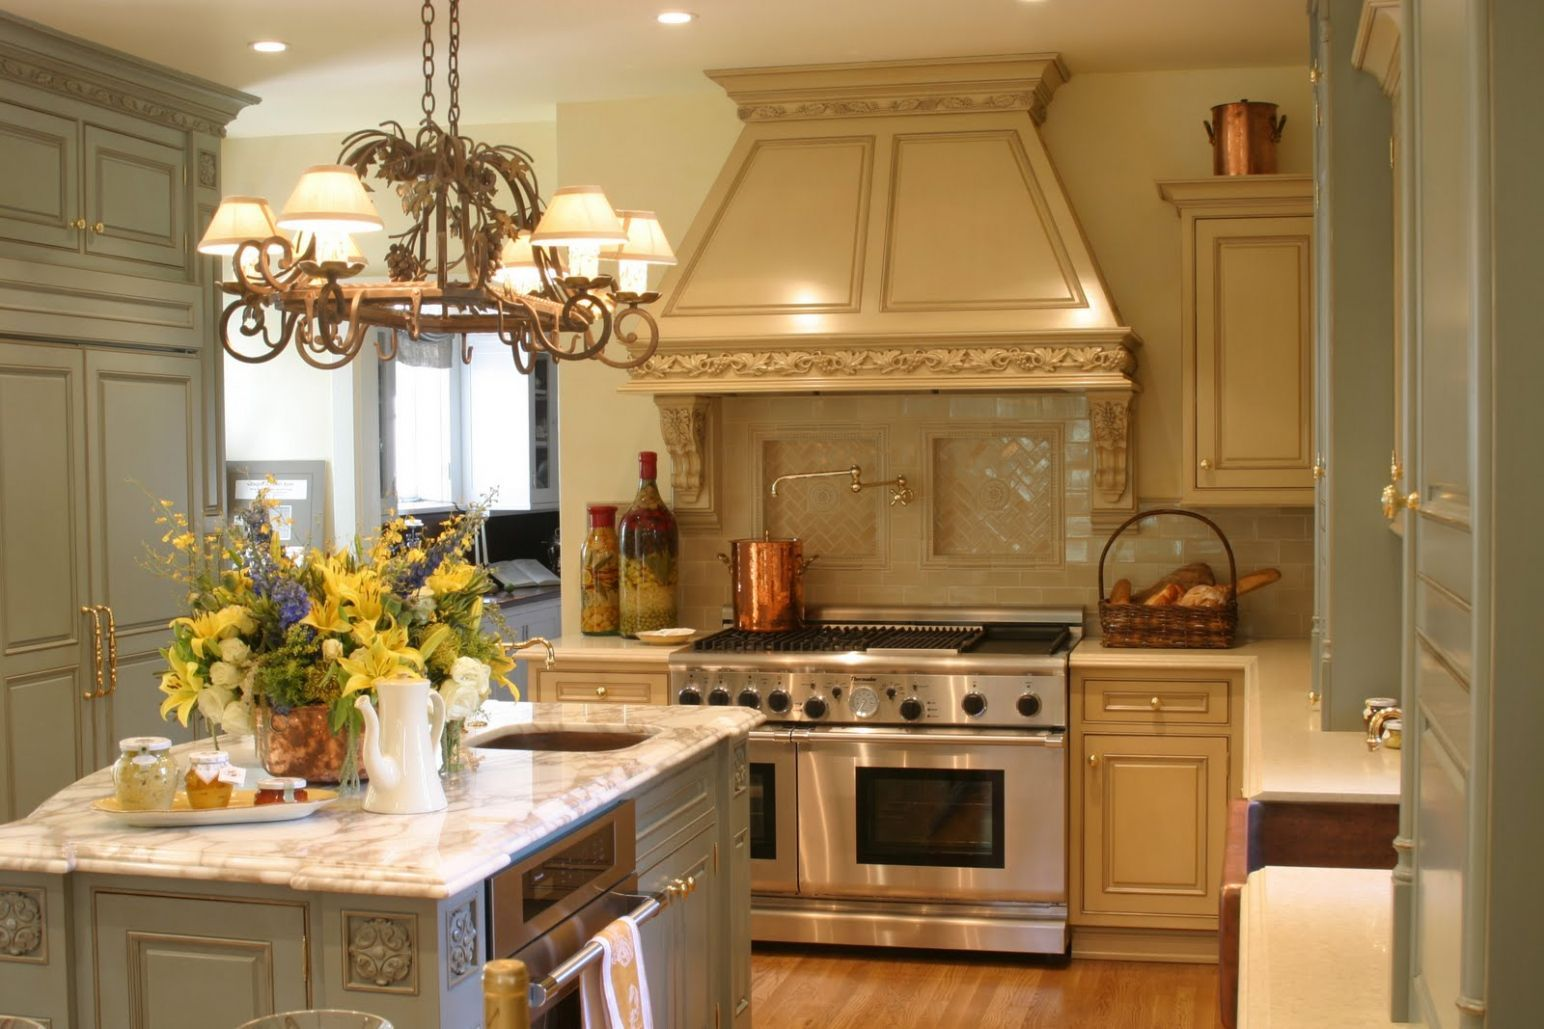 Estimated Cost To Remodel Kitchen Kitchen Track Lighting - Estimated cost to remodel kitchen